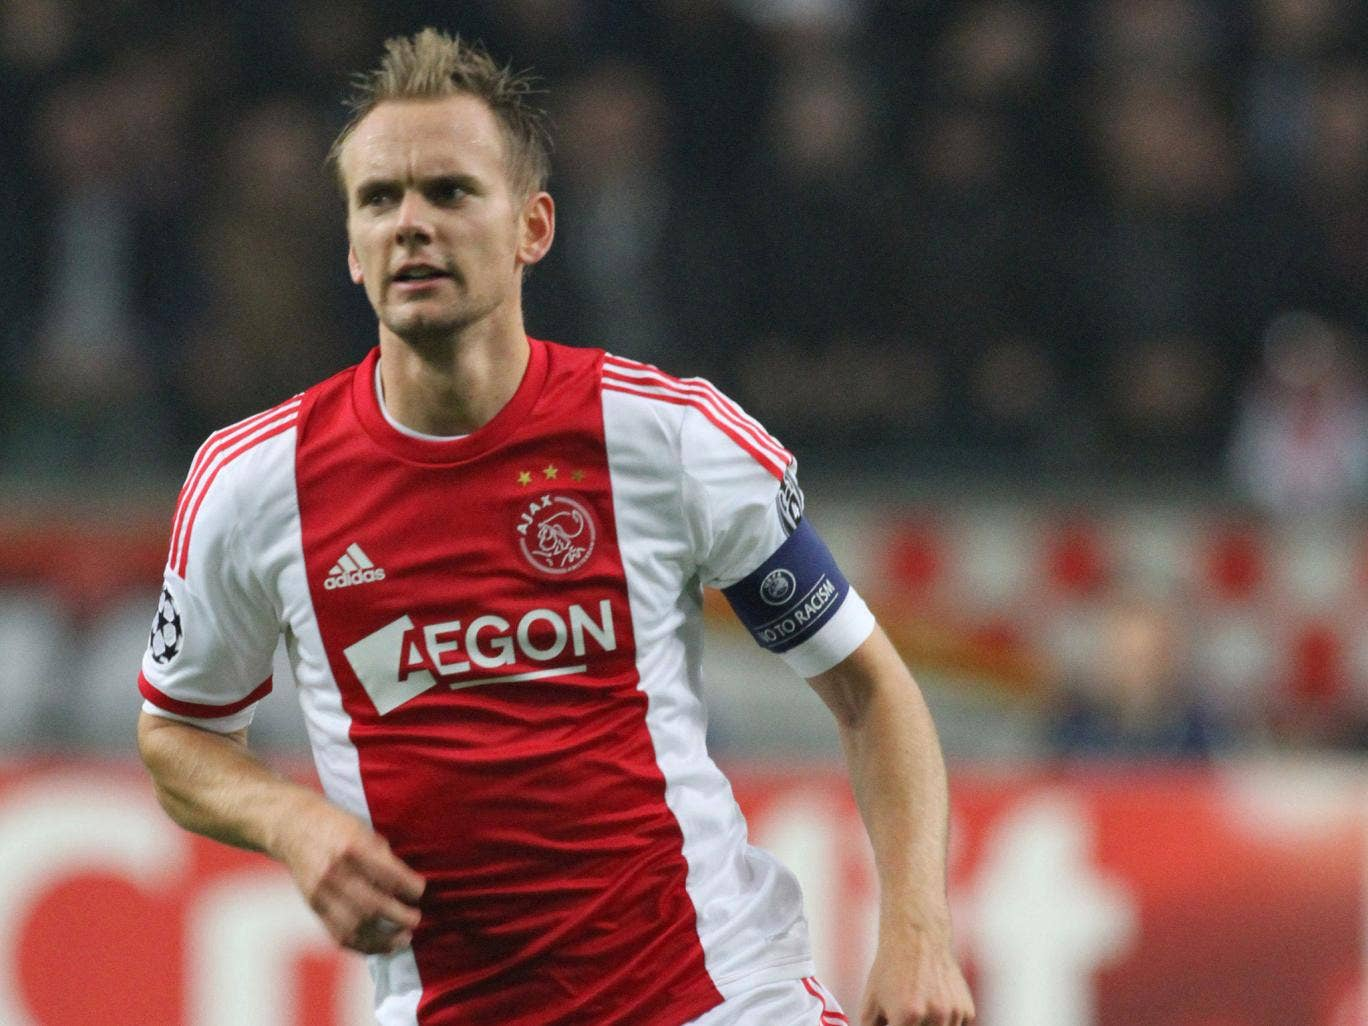 Ajax captain Siem de Jong has completed a transfer to Newcastle